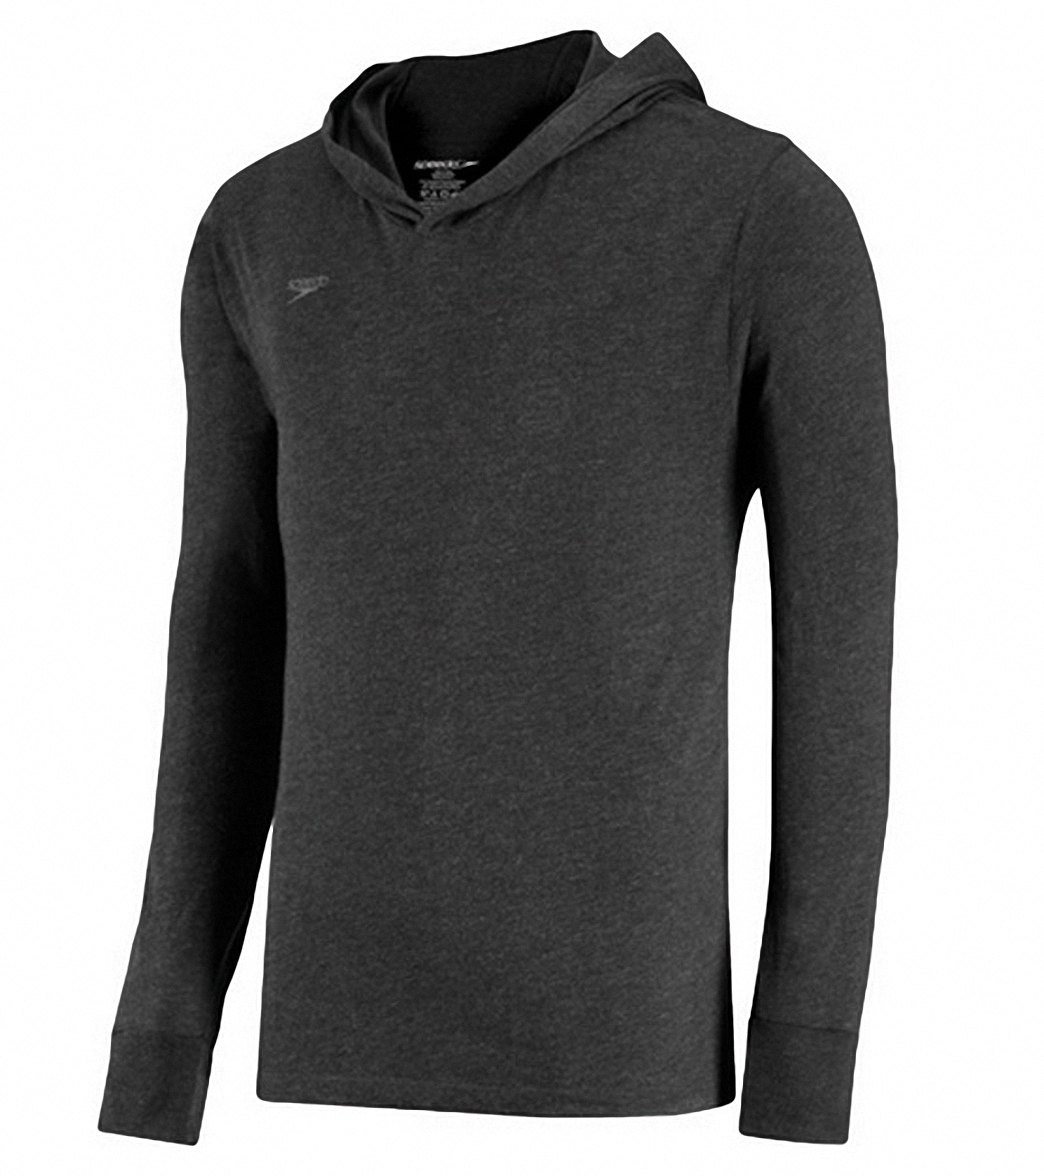 Speedo Unisex Pull Over Hoodie at SwimOutlet.com - Free Shipping 15b80692f